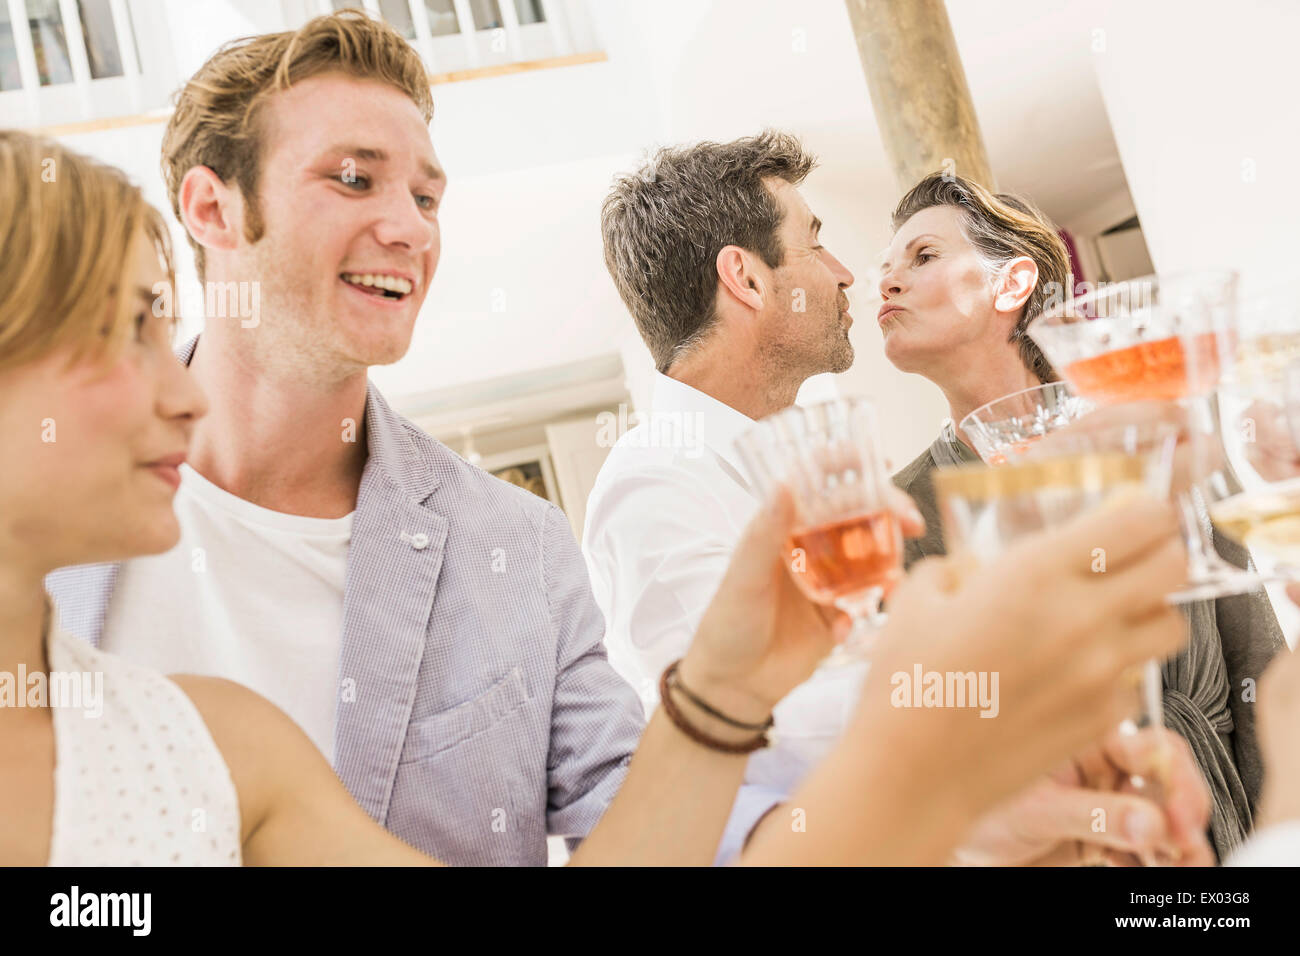 Family making a toast at birthday party - Stock Image